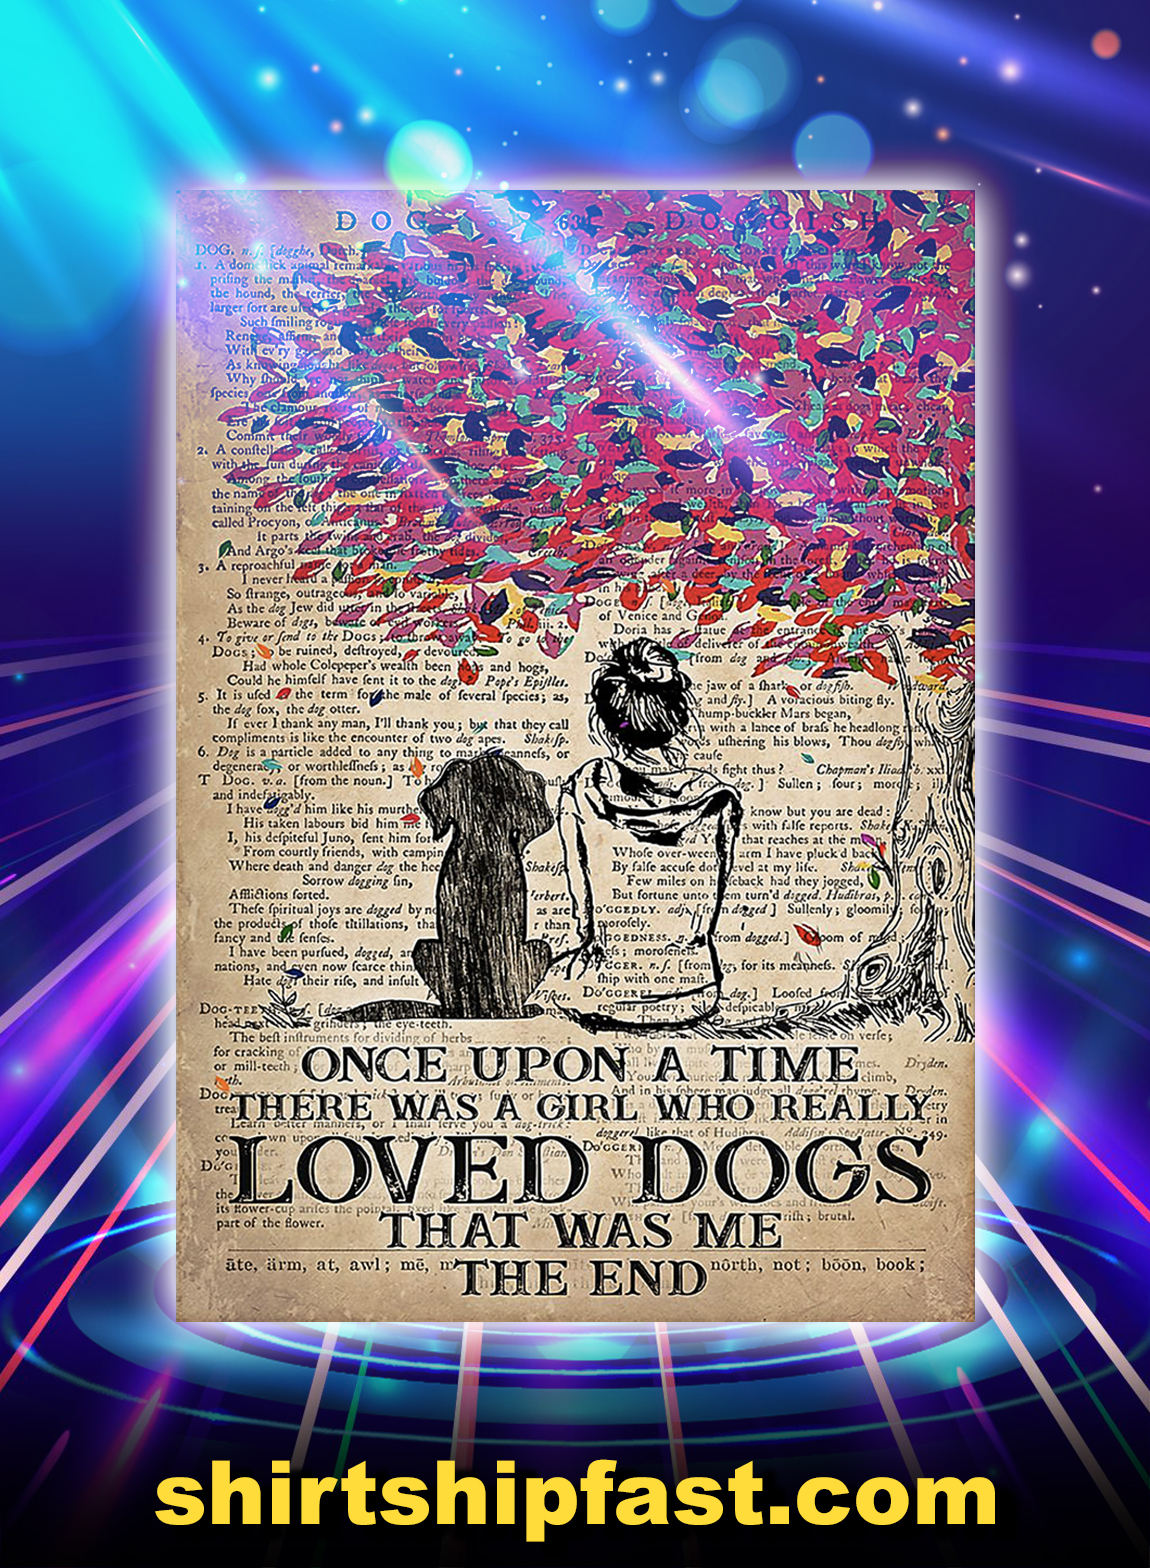 Once upon a time there was a girl who really loved dogs poster - A2